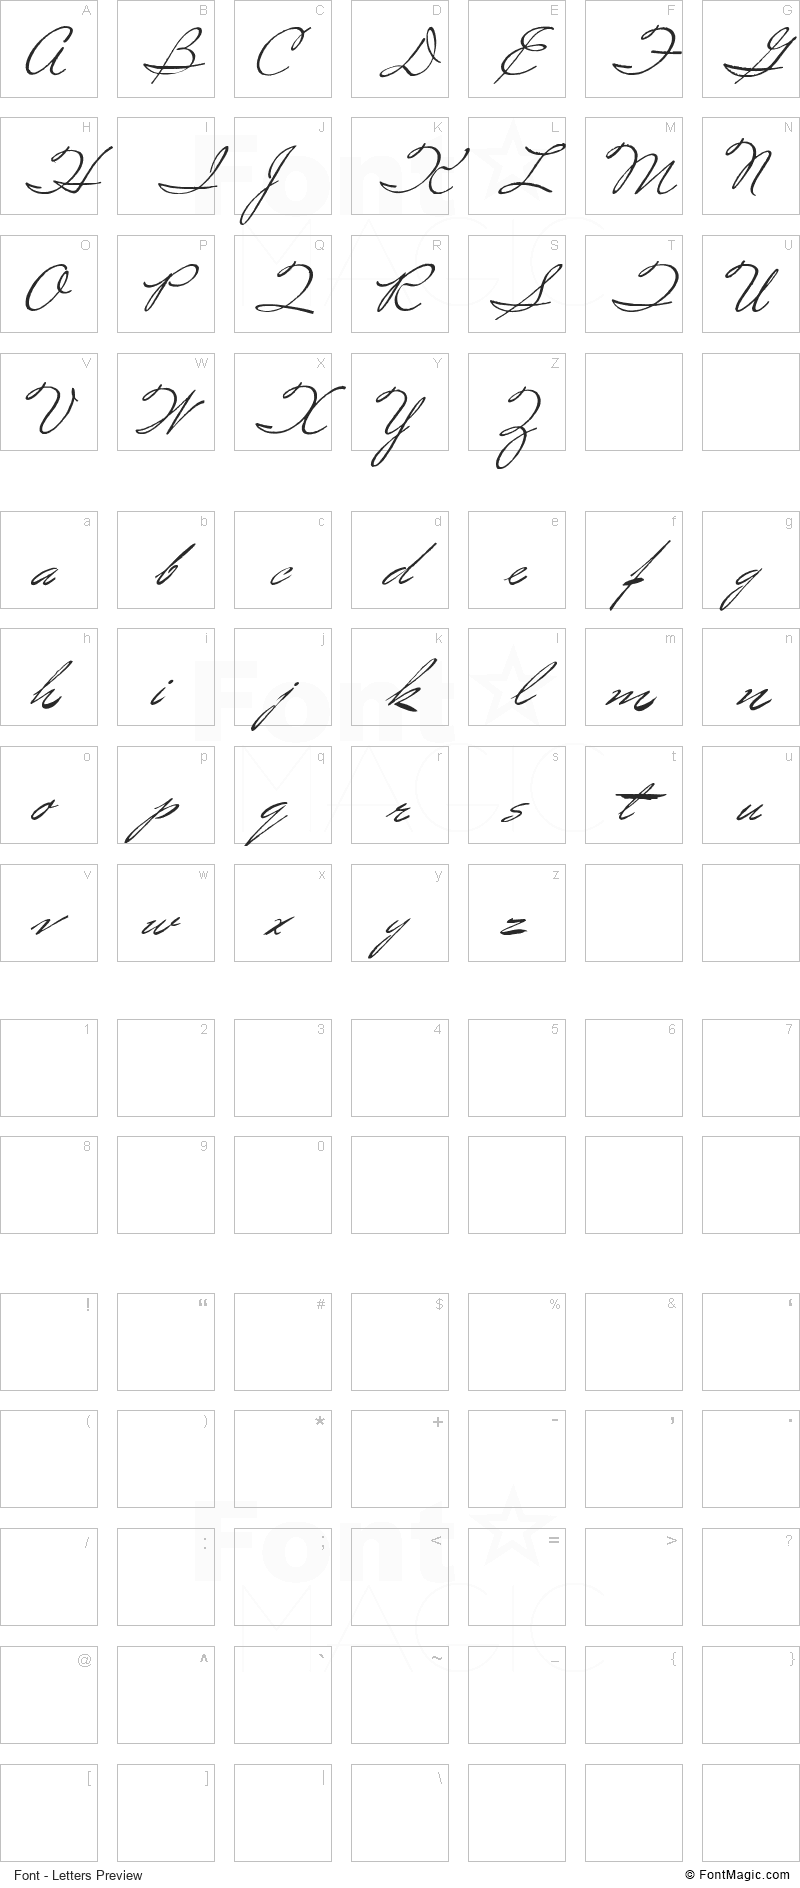 Spirulina Font - All Latters Preview Chart